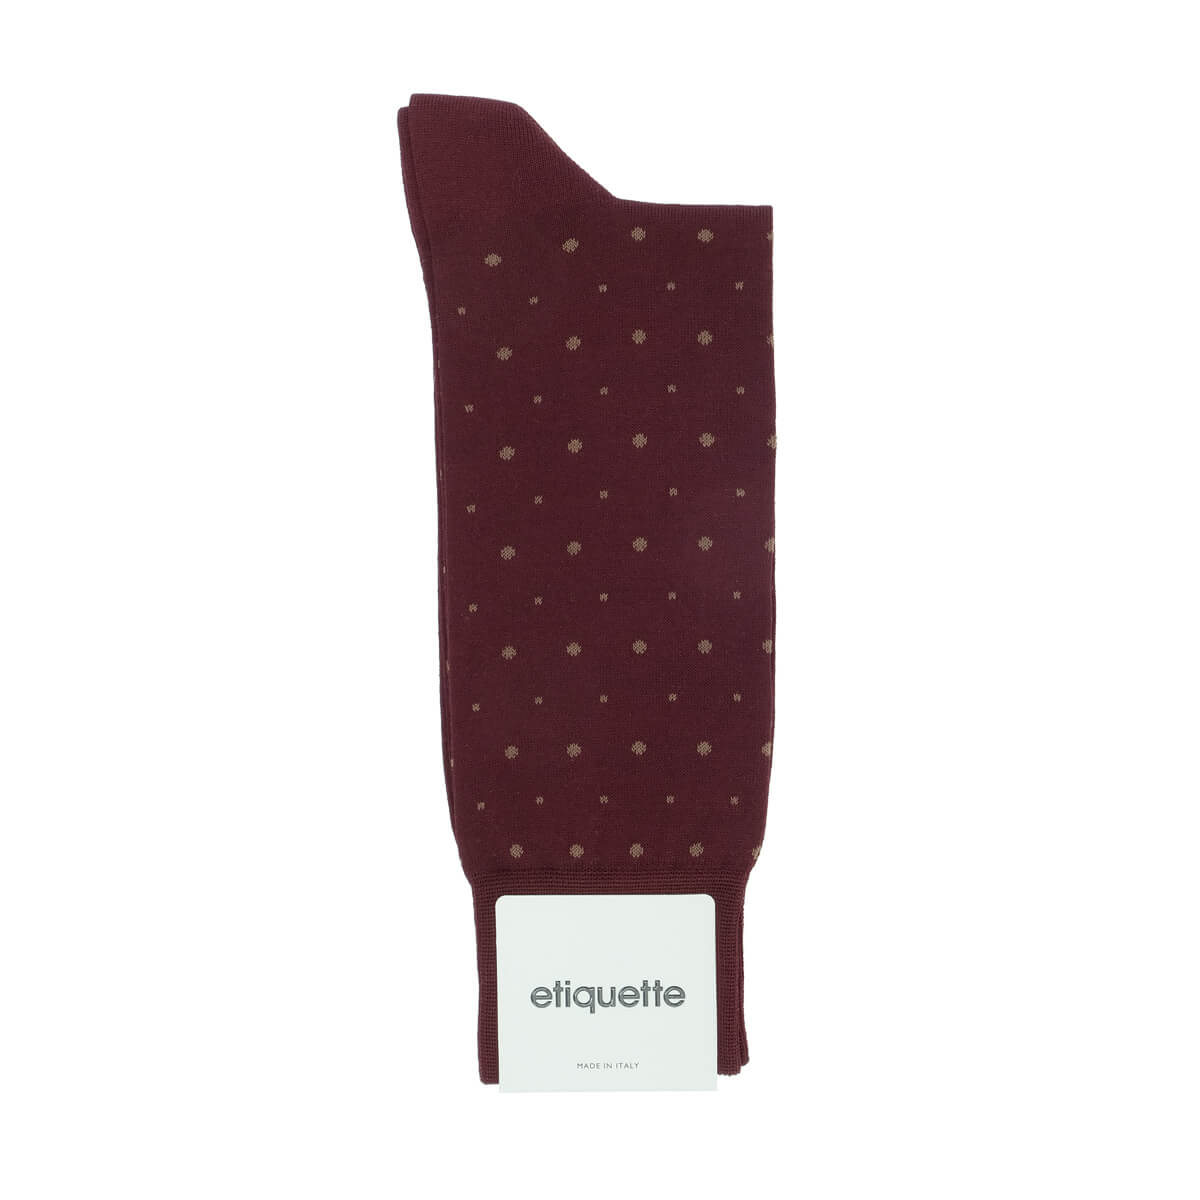 Mens Socks - Ball Point Men's Socks - Bordeaux⎪Etiquette Clothiers